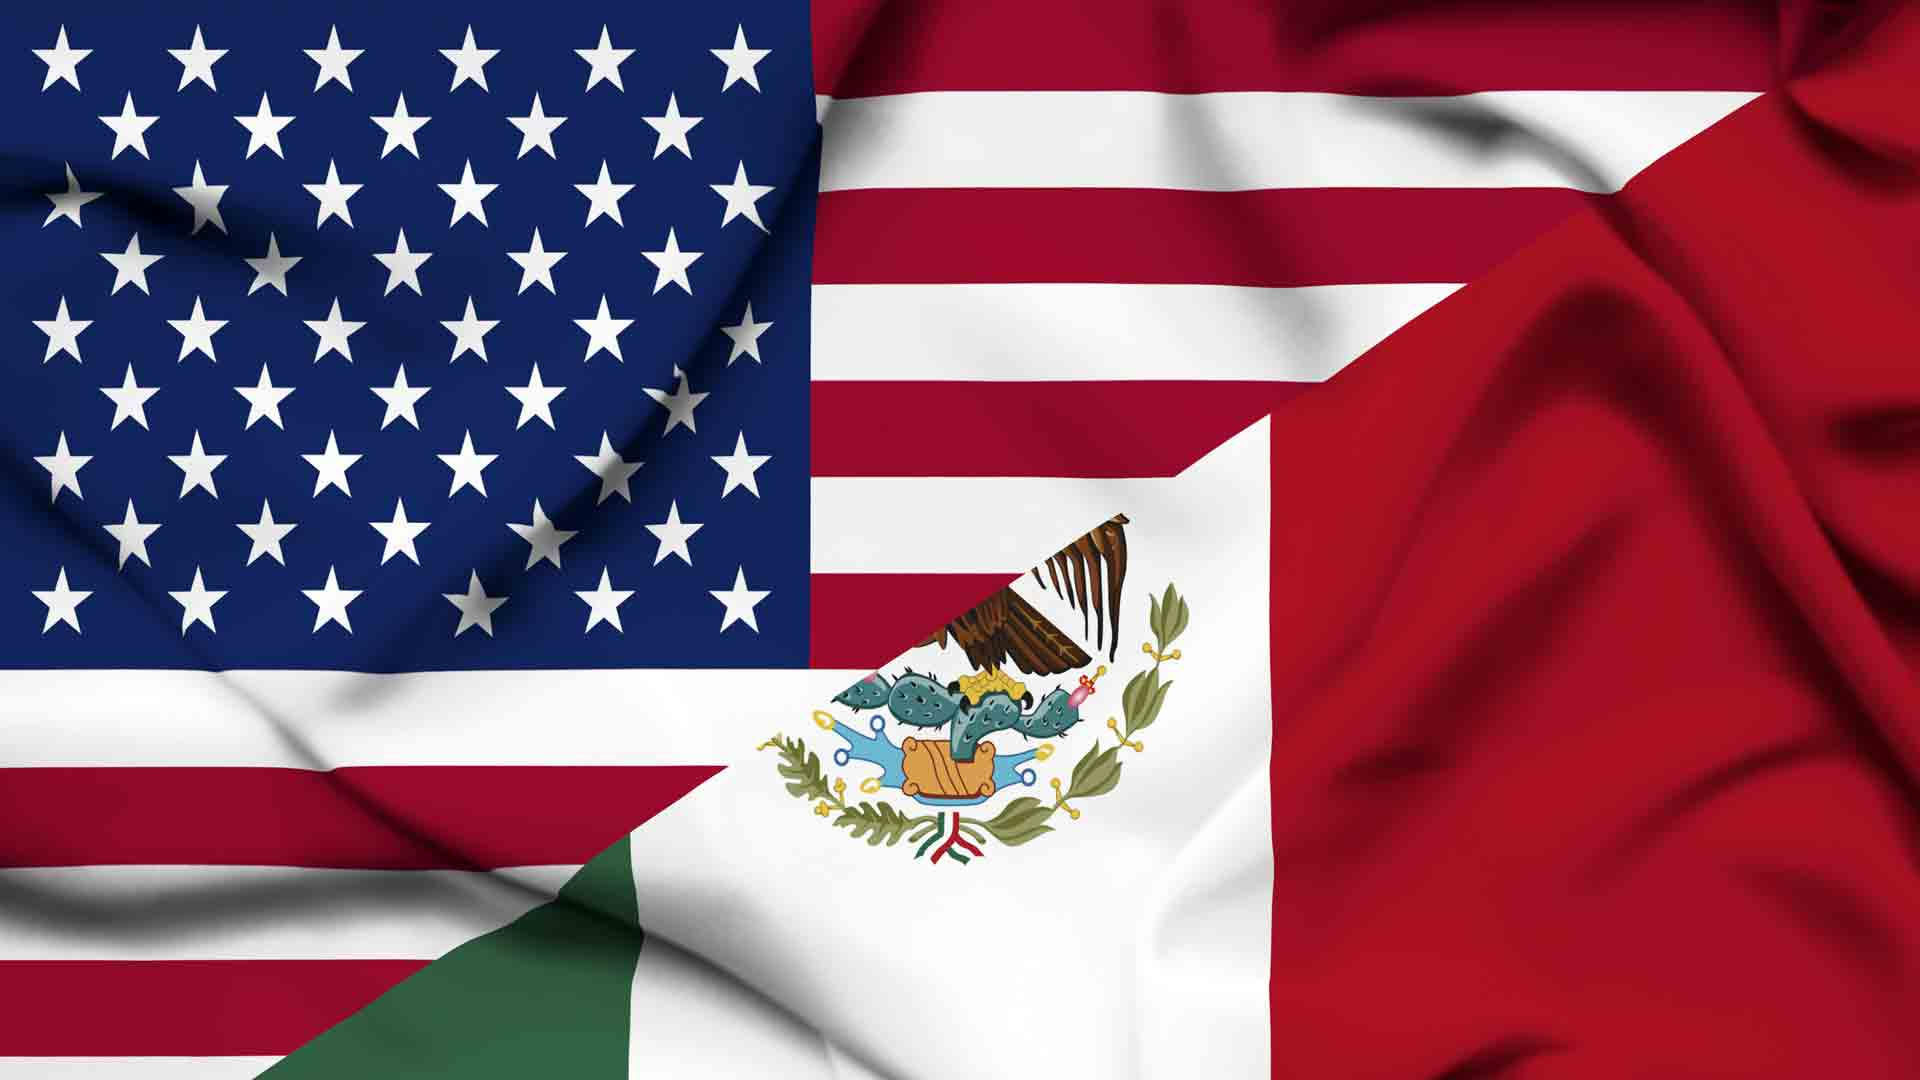 Index of /wp-content/gallery/us-travel-to-mexico on united states flag border, united states flaf, american flag, united states flag soccer, united states flag with eagle, united states flag drawing, chiapas state flag, united states america flag, 1830 united states flag, united states flag 1861, united states flag history, londonderry ireland flag, united states national flag, united states flag background, mexican flag, united states flag waving, united states flag texture, united states post flag, united states flag code, united states army flag,